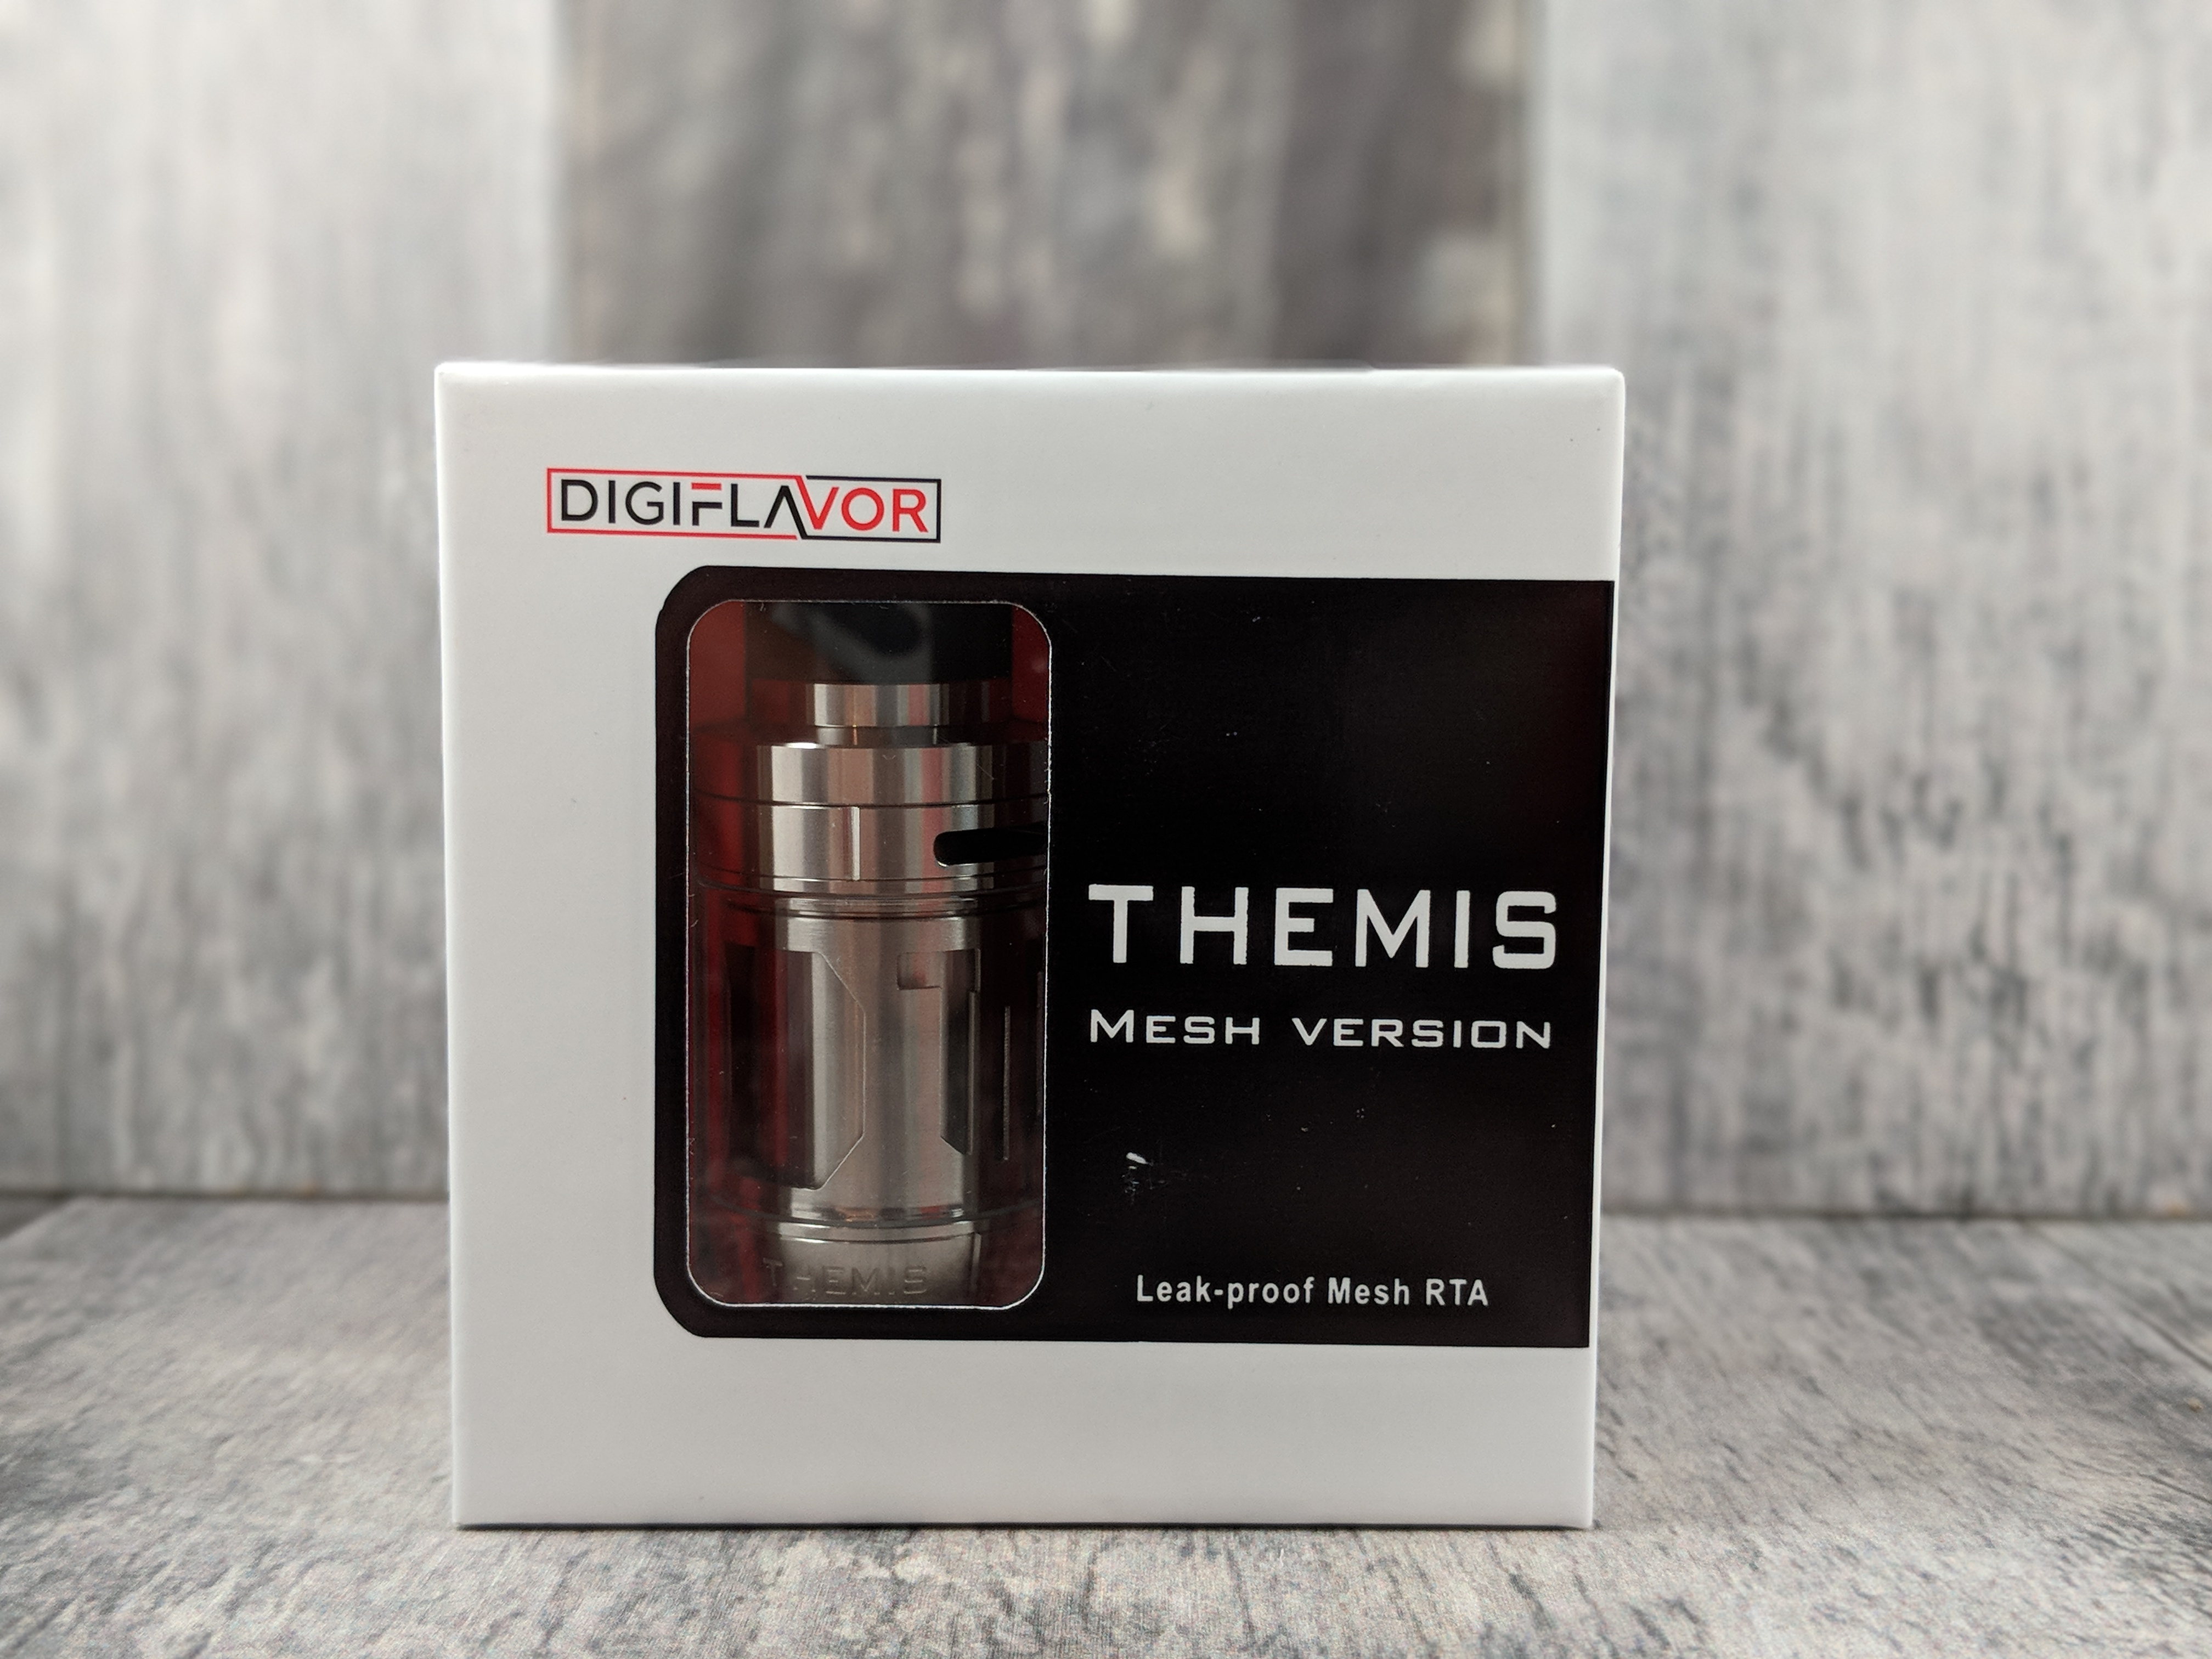 Honest review time: The Themis Mesh RTA from Digiflavor | The Vape